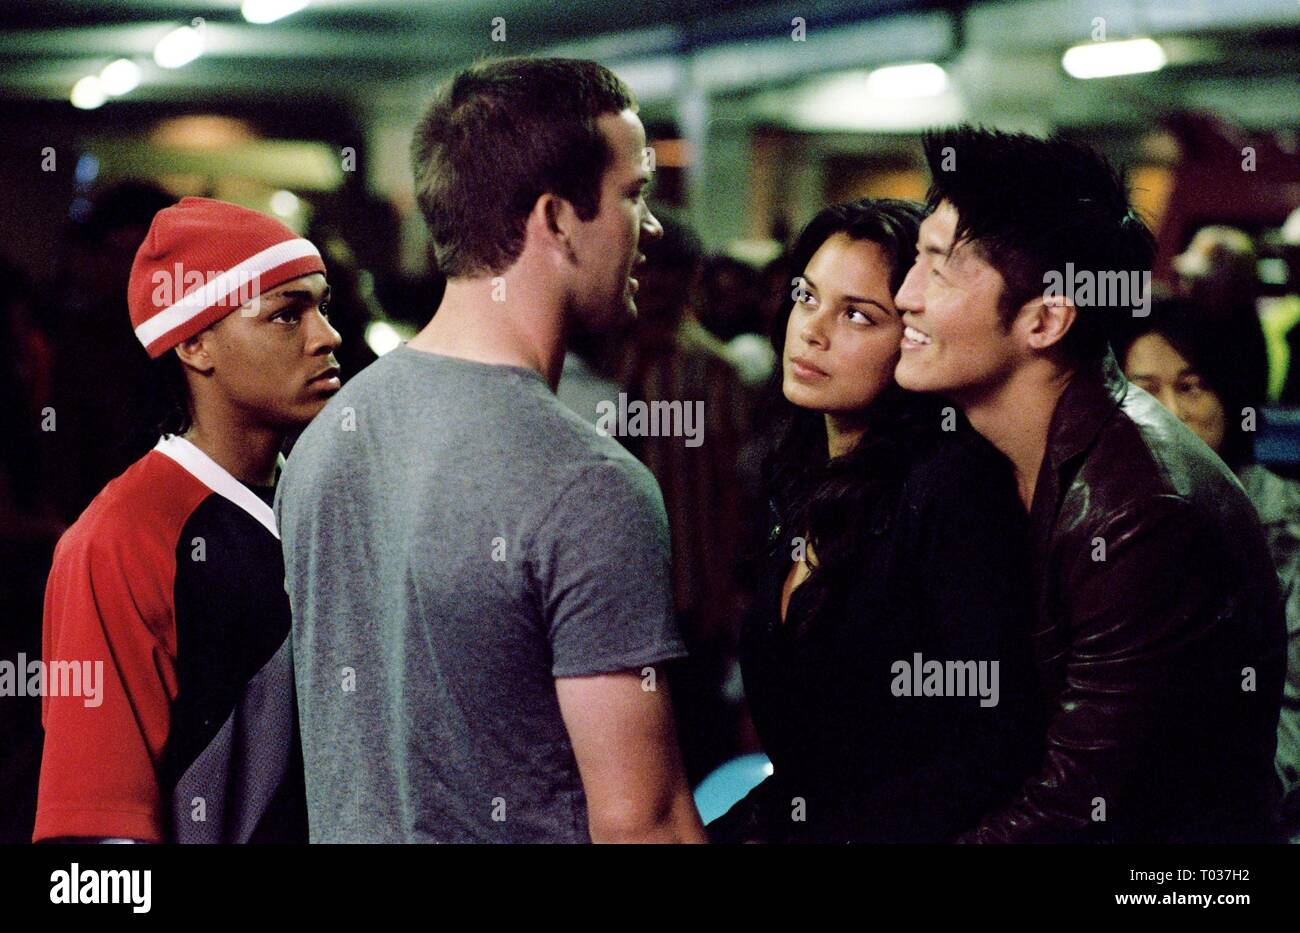 BOW WOW, LUCAS BLACK, NATHALIE KELLEY, BRIAN TEE, THE FAST AND THE FURIOUS: TOKYO DRIFT, 2006 Stock Photo